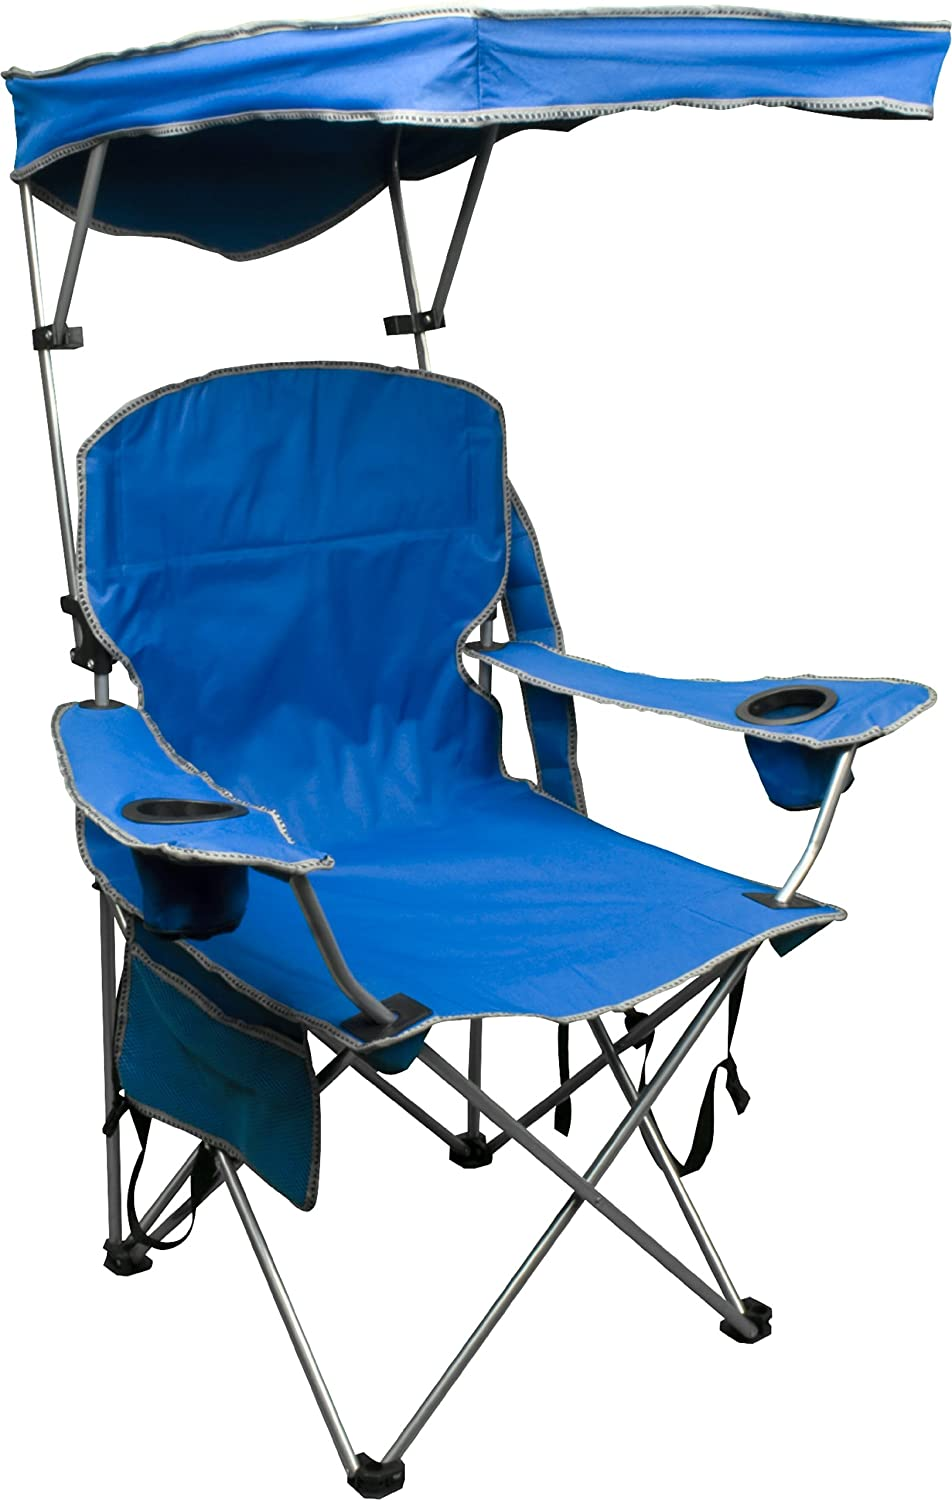 Quik Shade Adjustable Canopy Folding Camp Chair - Via Amazon.com